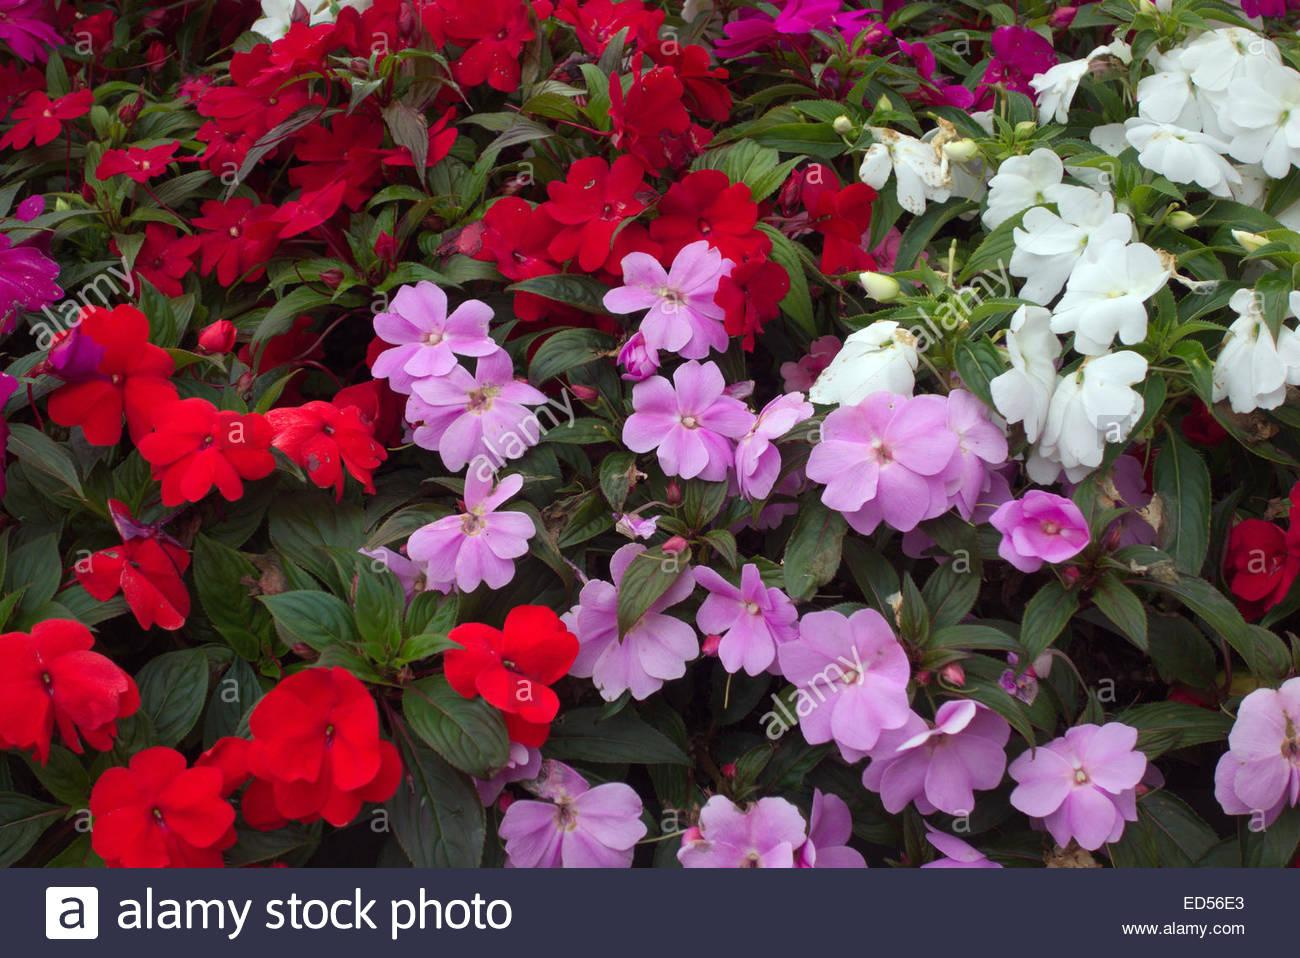 Macintosh HD:Users:sarinavetterli:Desktop:Plant and Granola Sale:Plant Images:New Guinea Impatiens.jpg